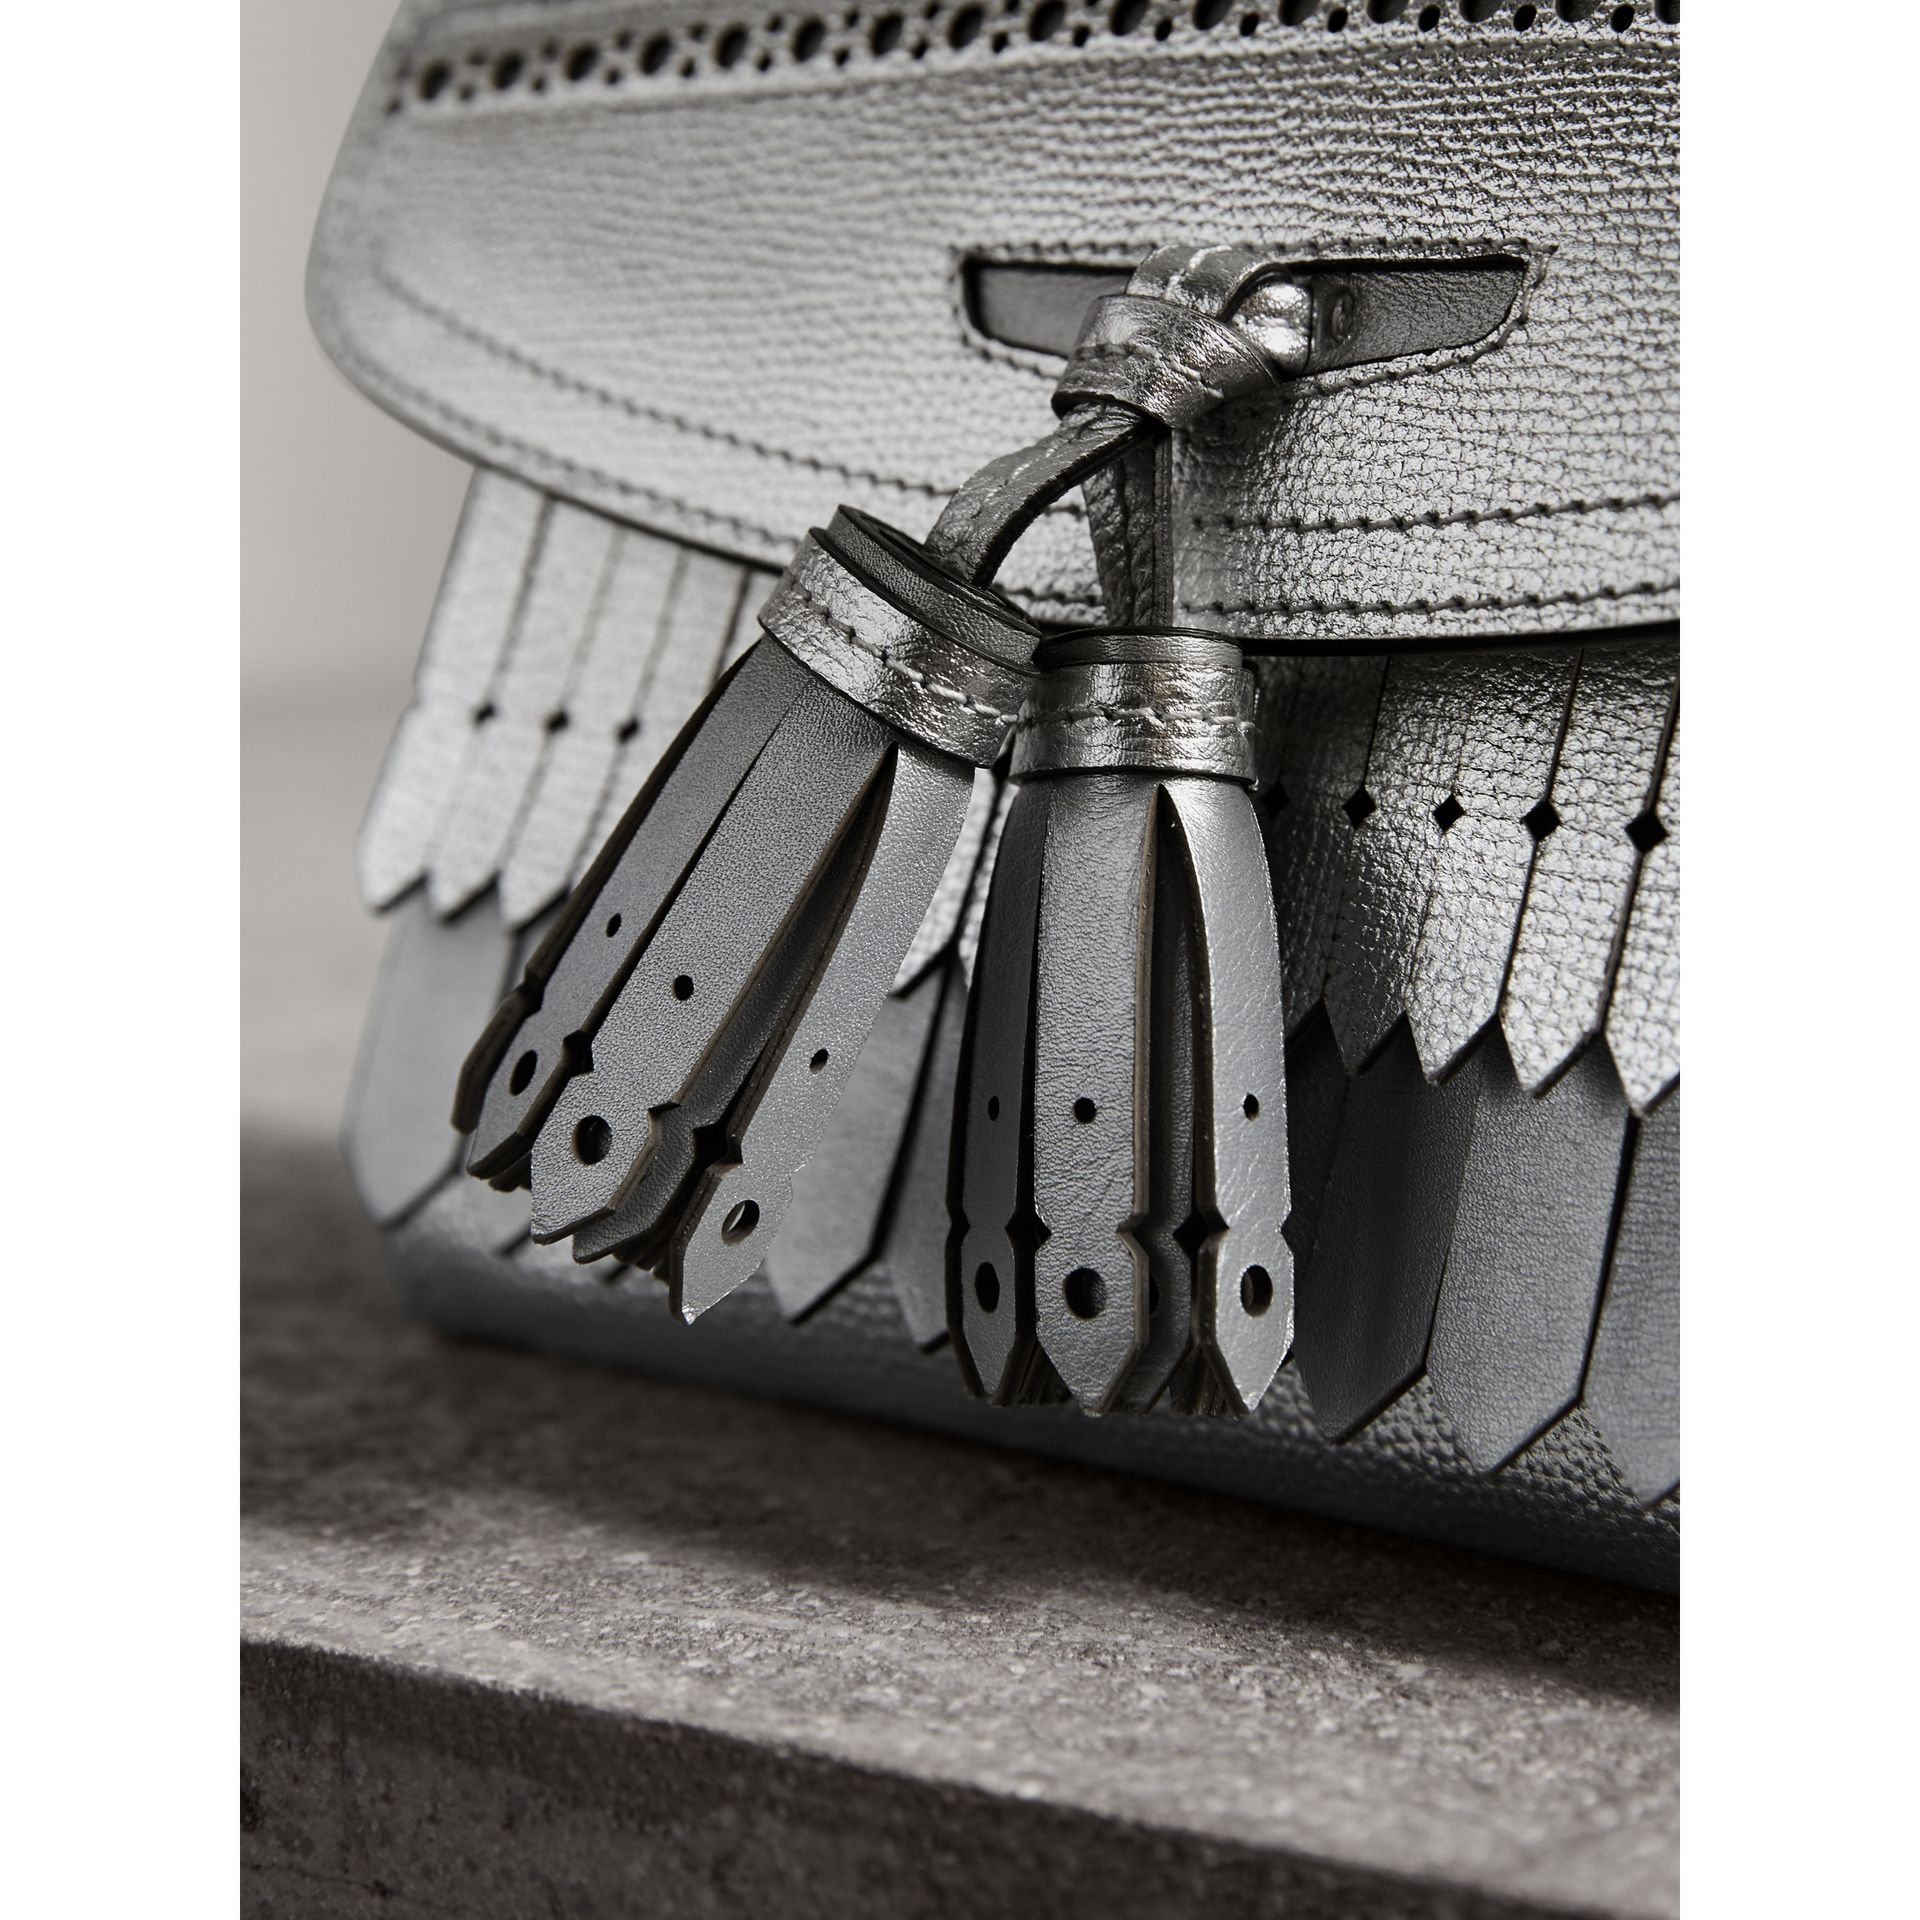 Brogue Detail Metallic Leather Crossbody Bag in Silver - Women | Burberry United Kingdom - gallery image 2